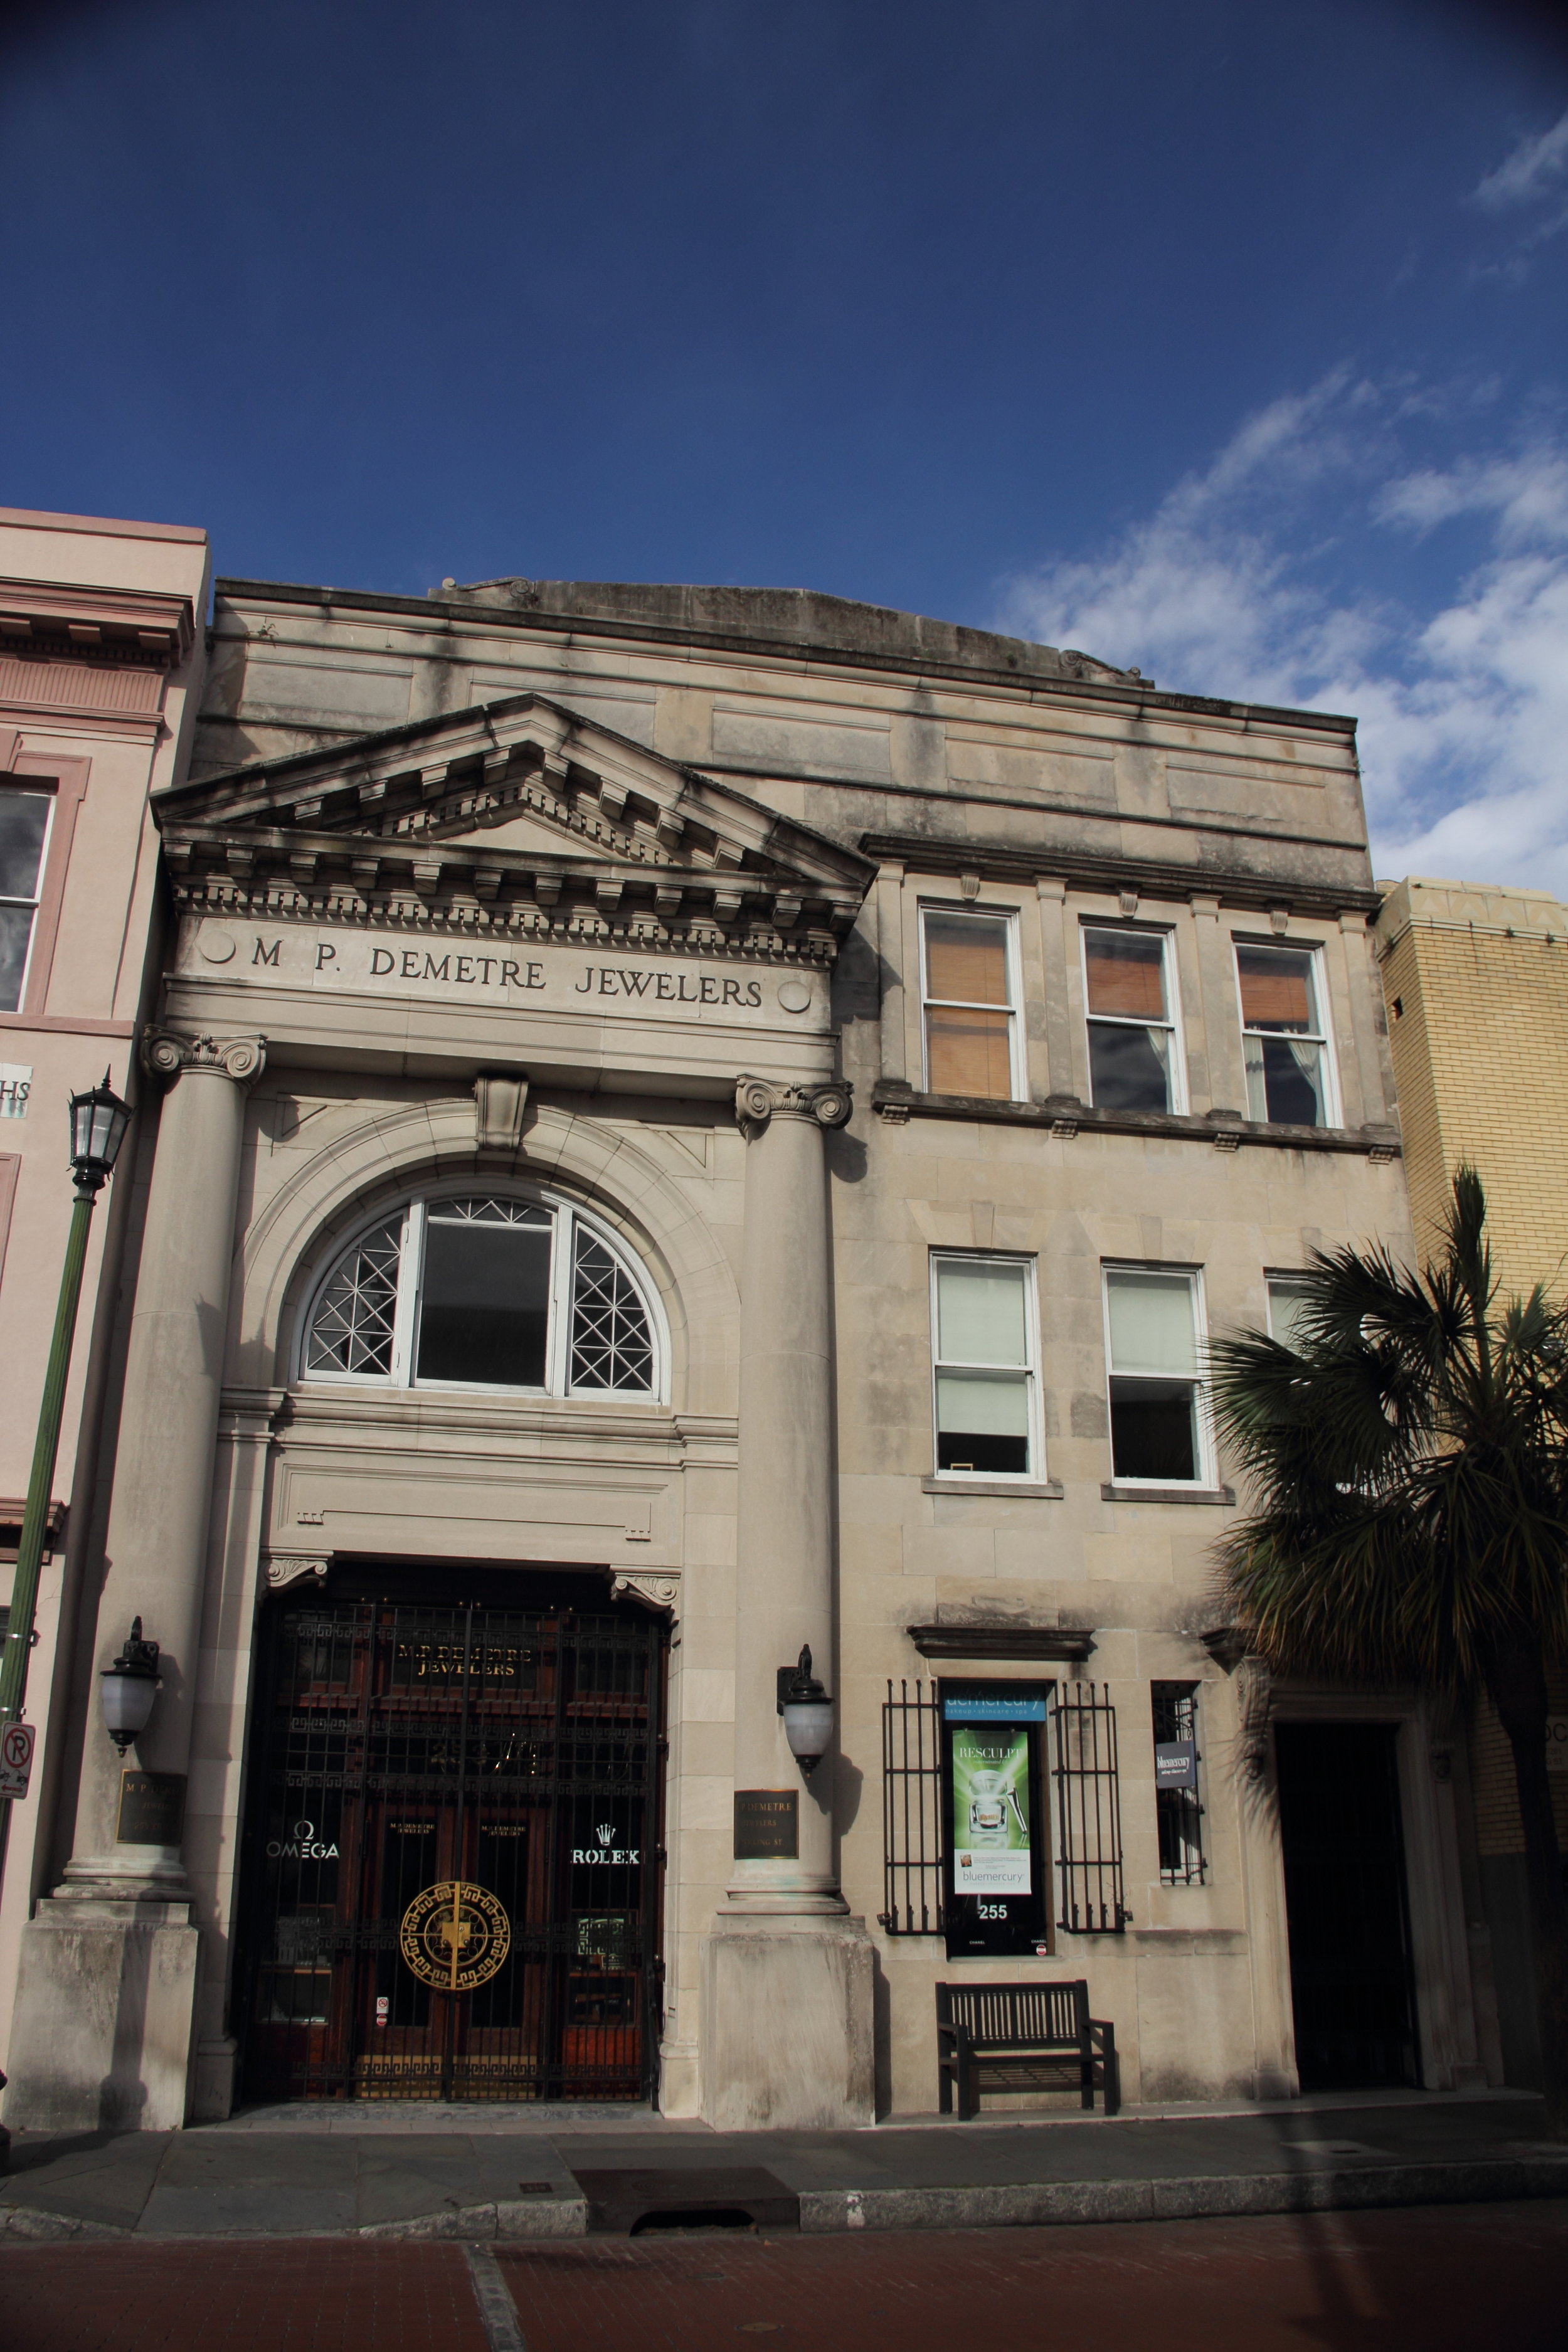 downtown charleston architecture